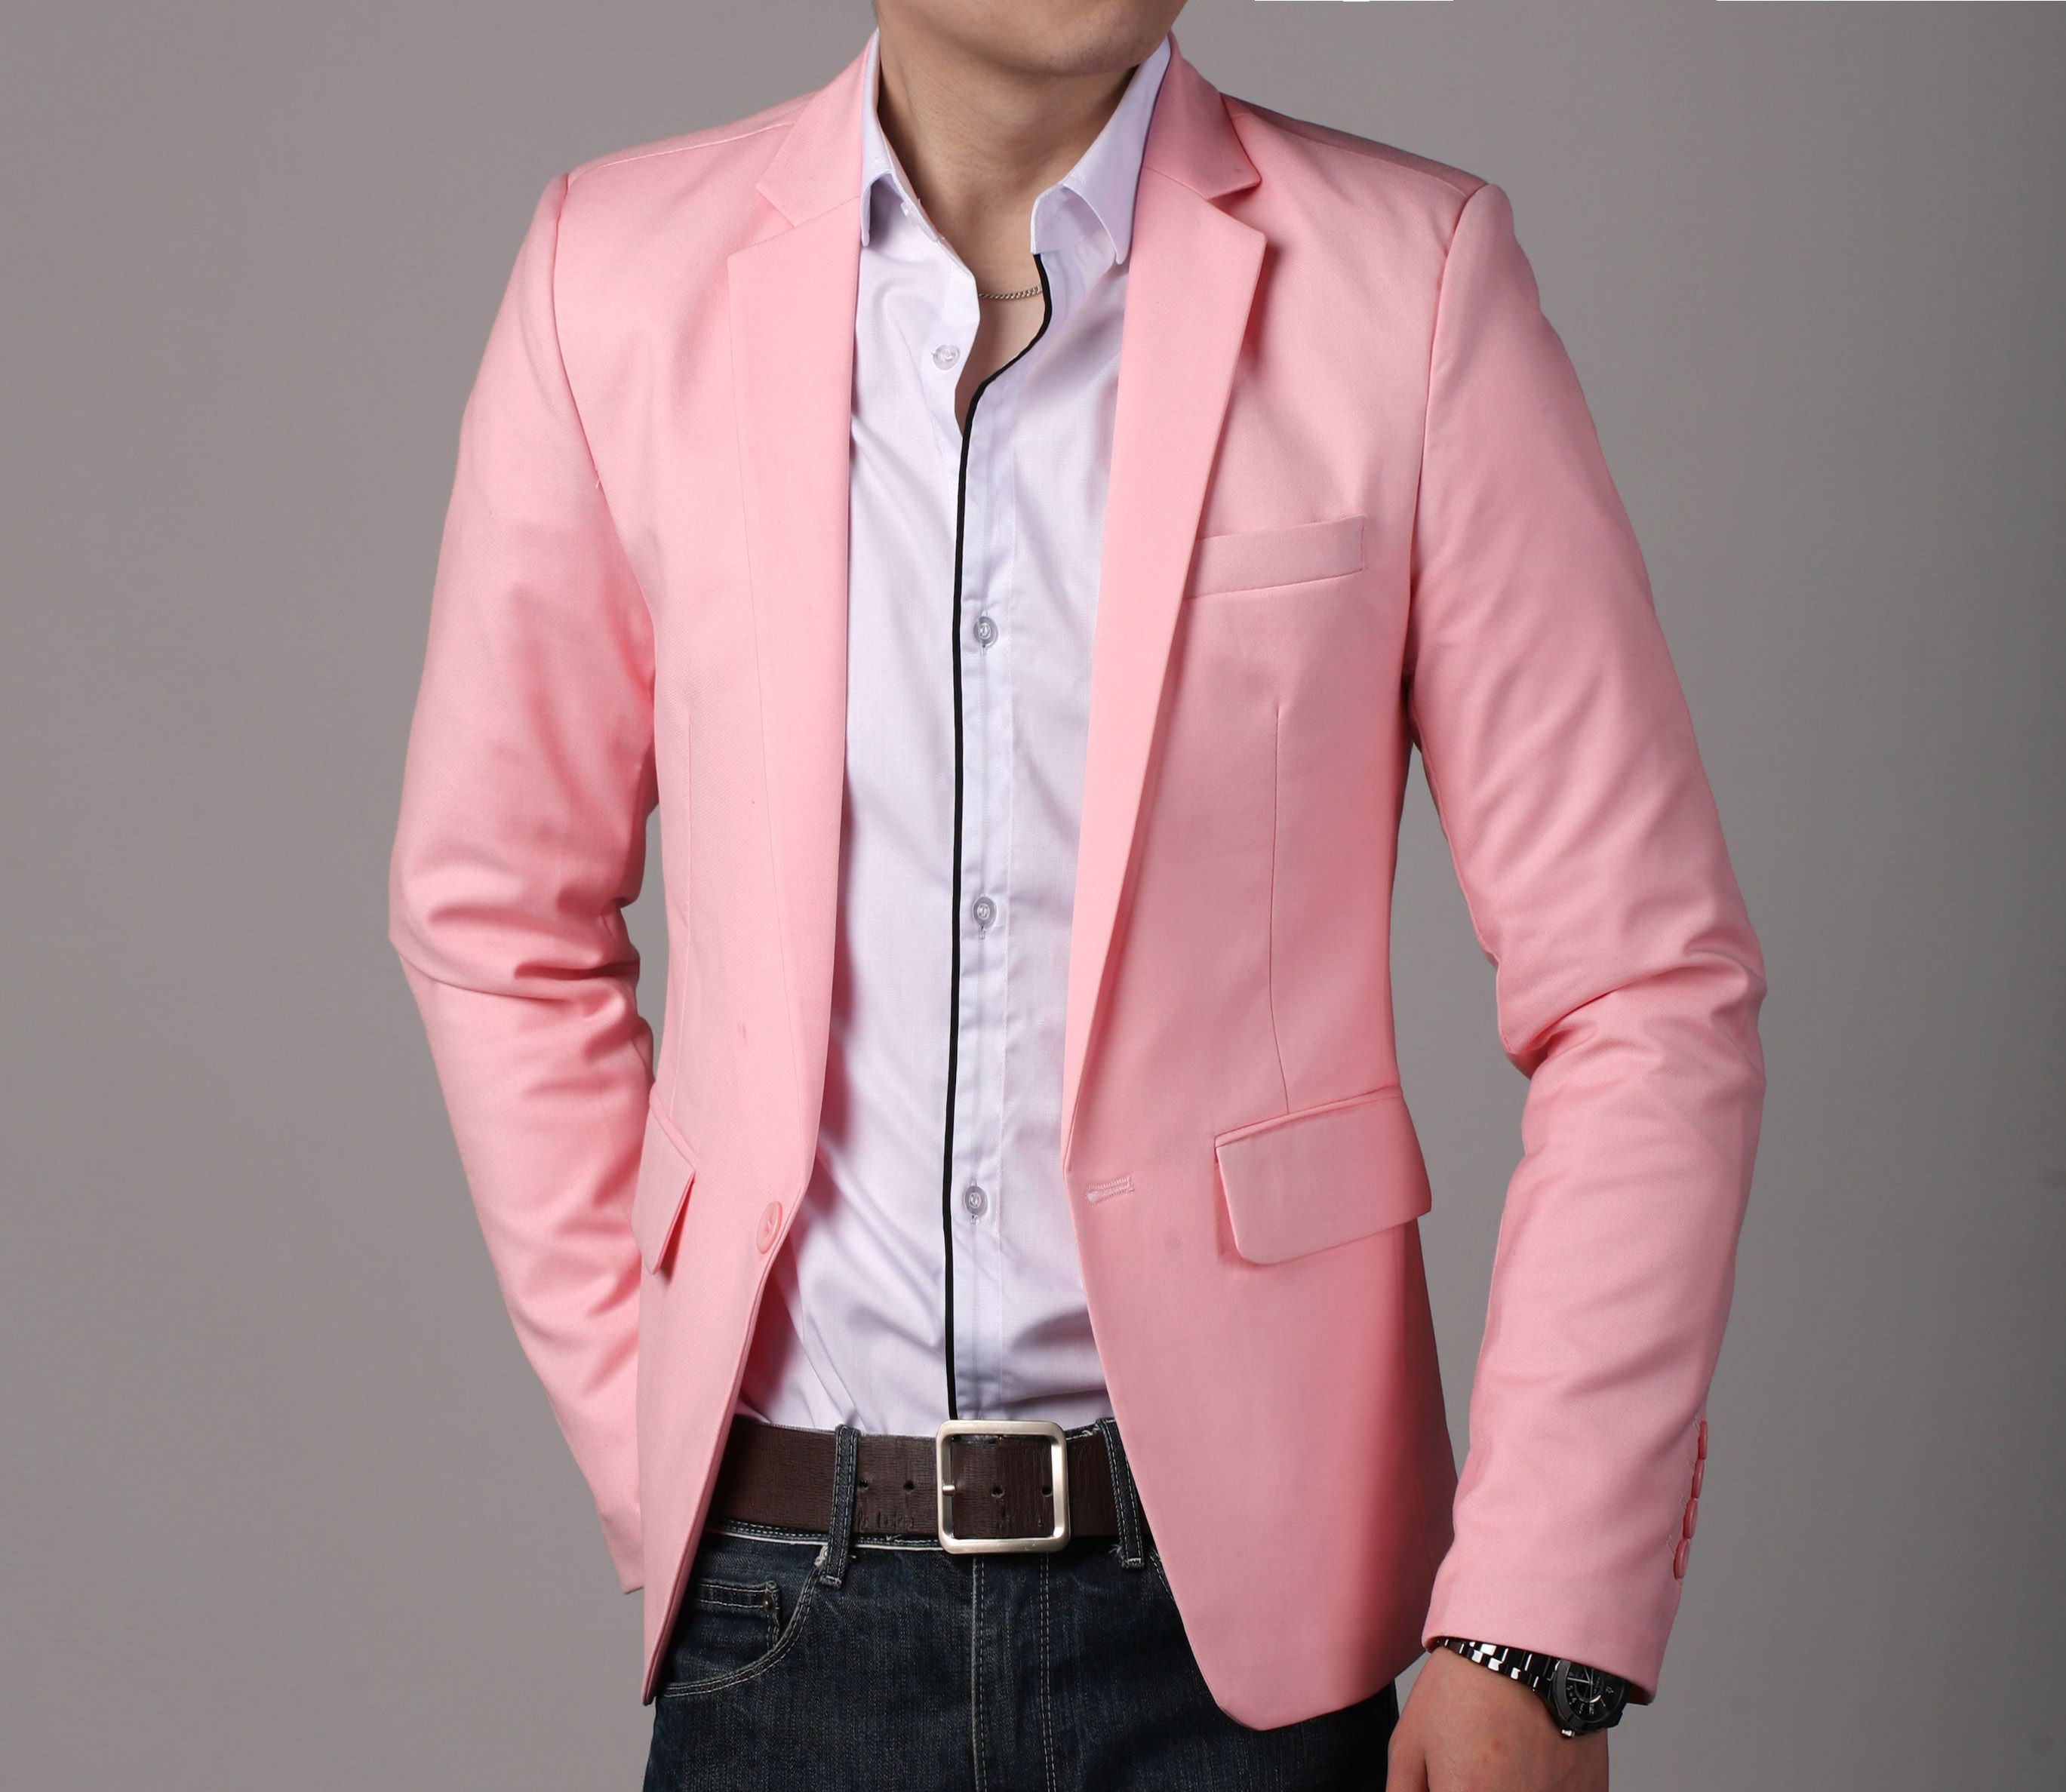 2013 Men's Slim Fit blazer Black Coat Fashion One button Pink ...